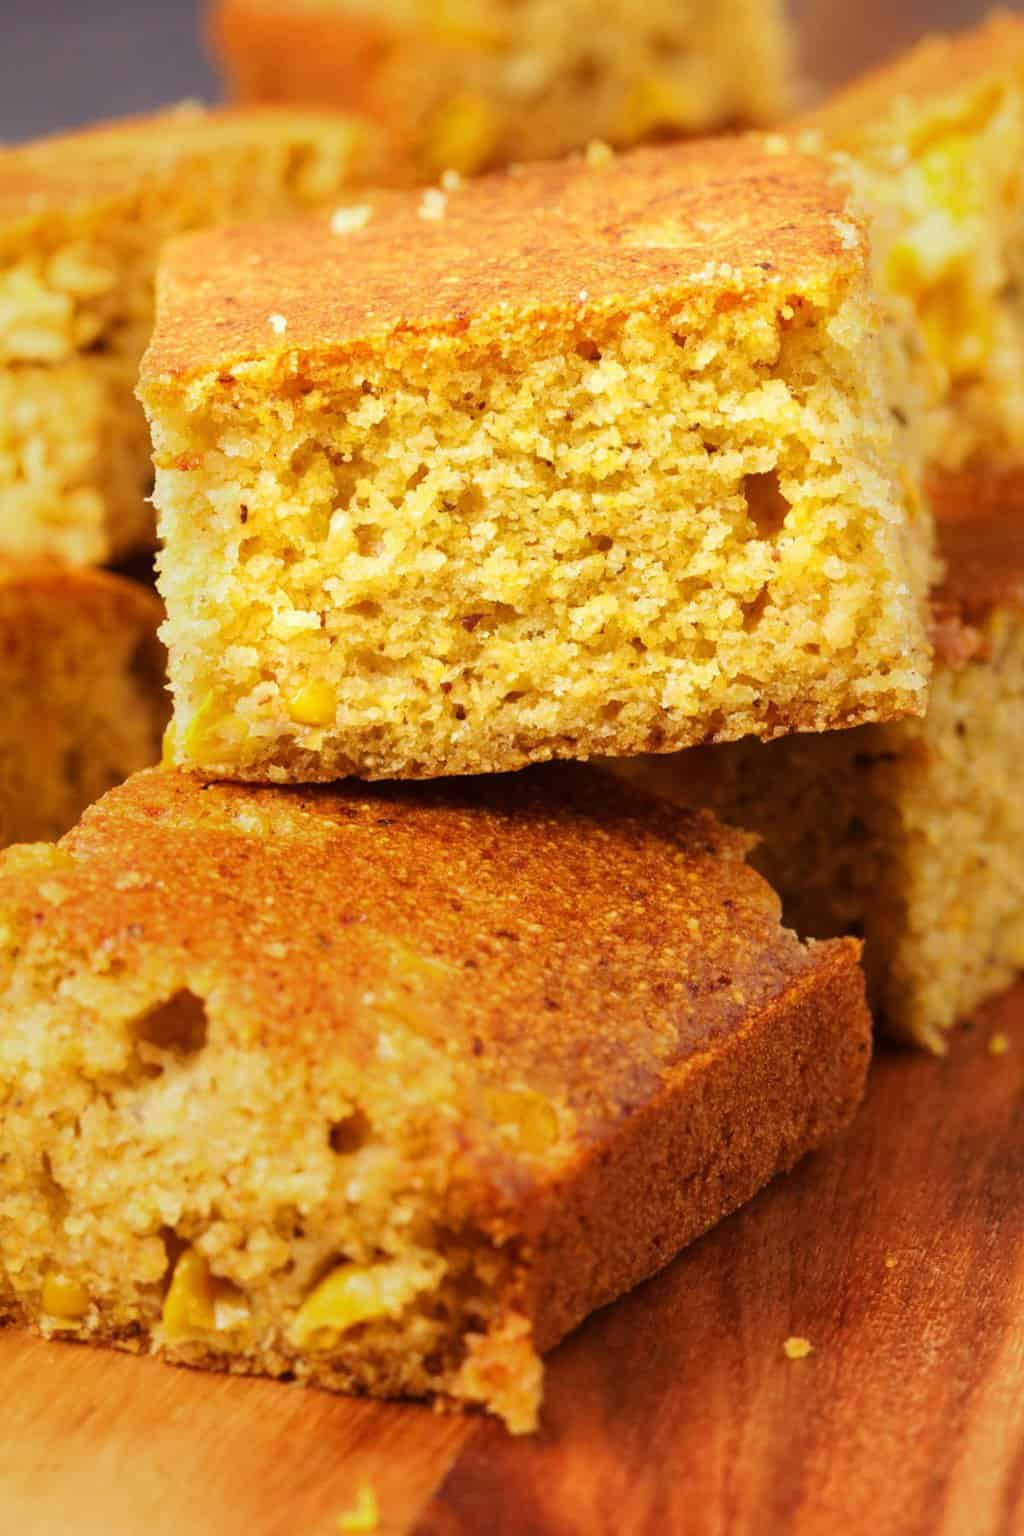 Vegan cornbread squares on a wooden board.